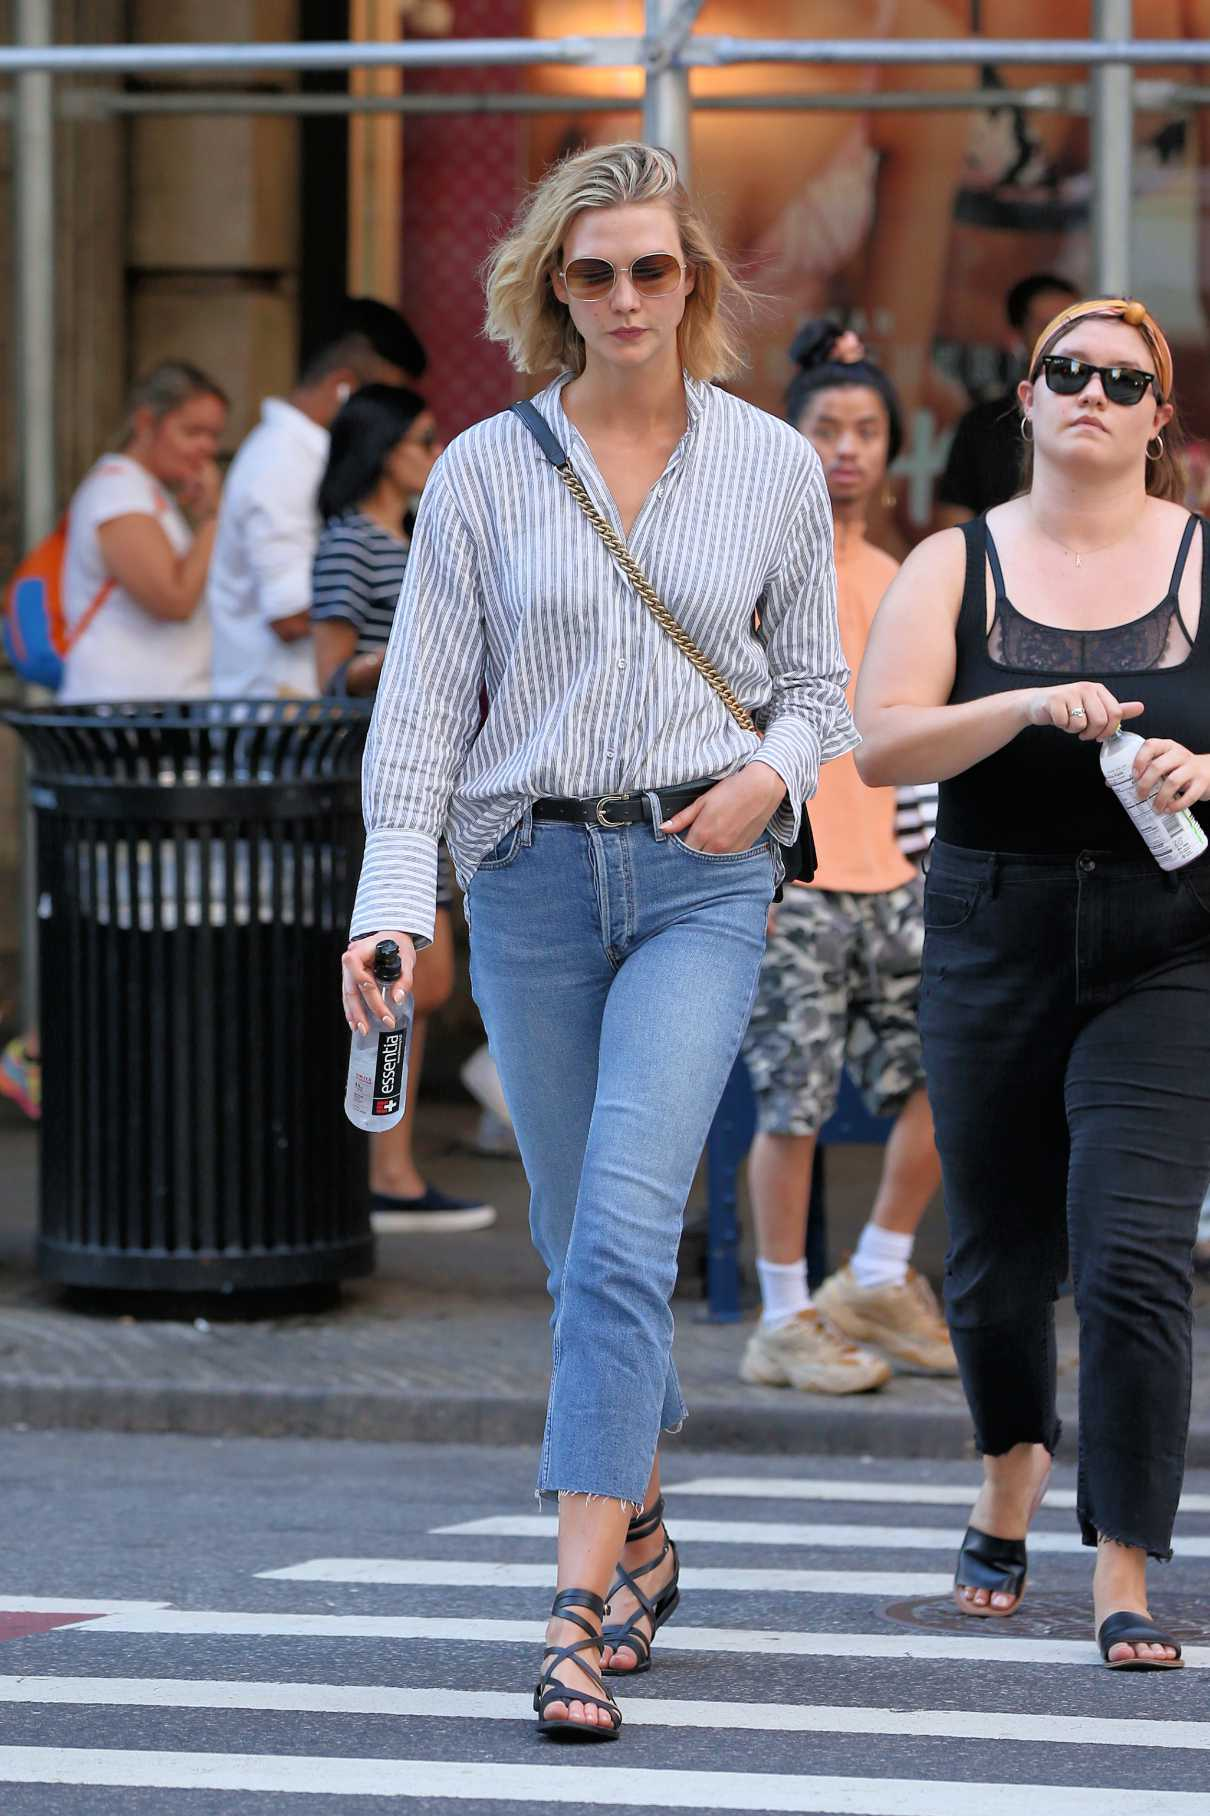 Karlie Kloss in a Striped Blouse